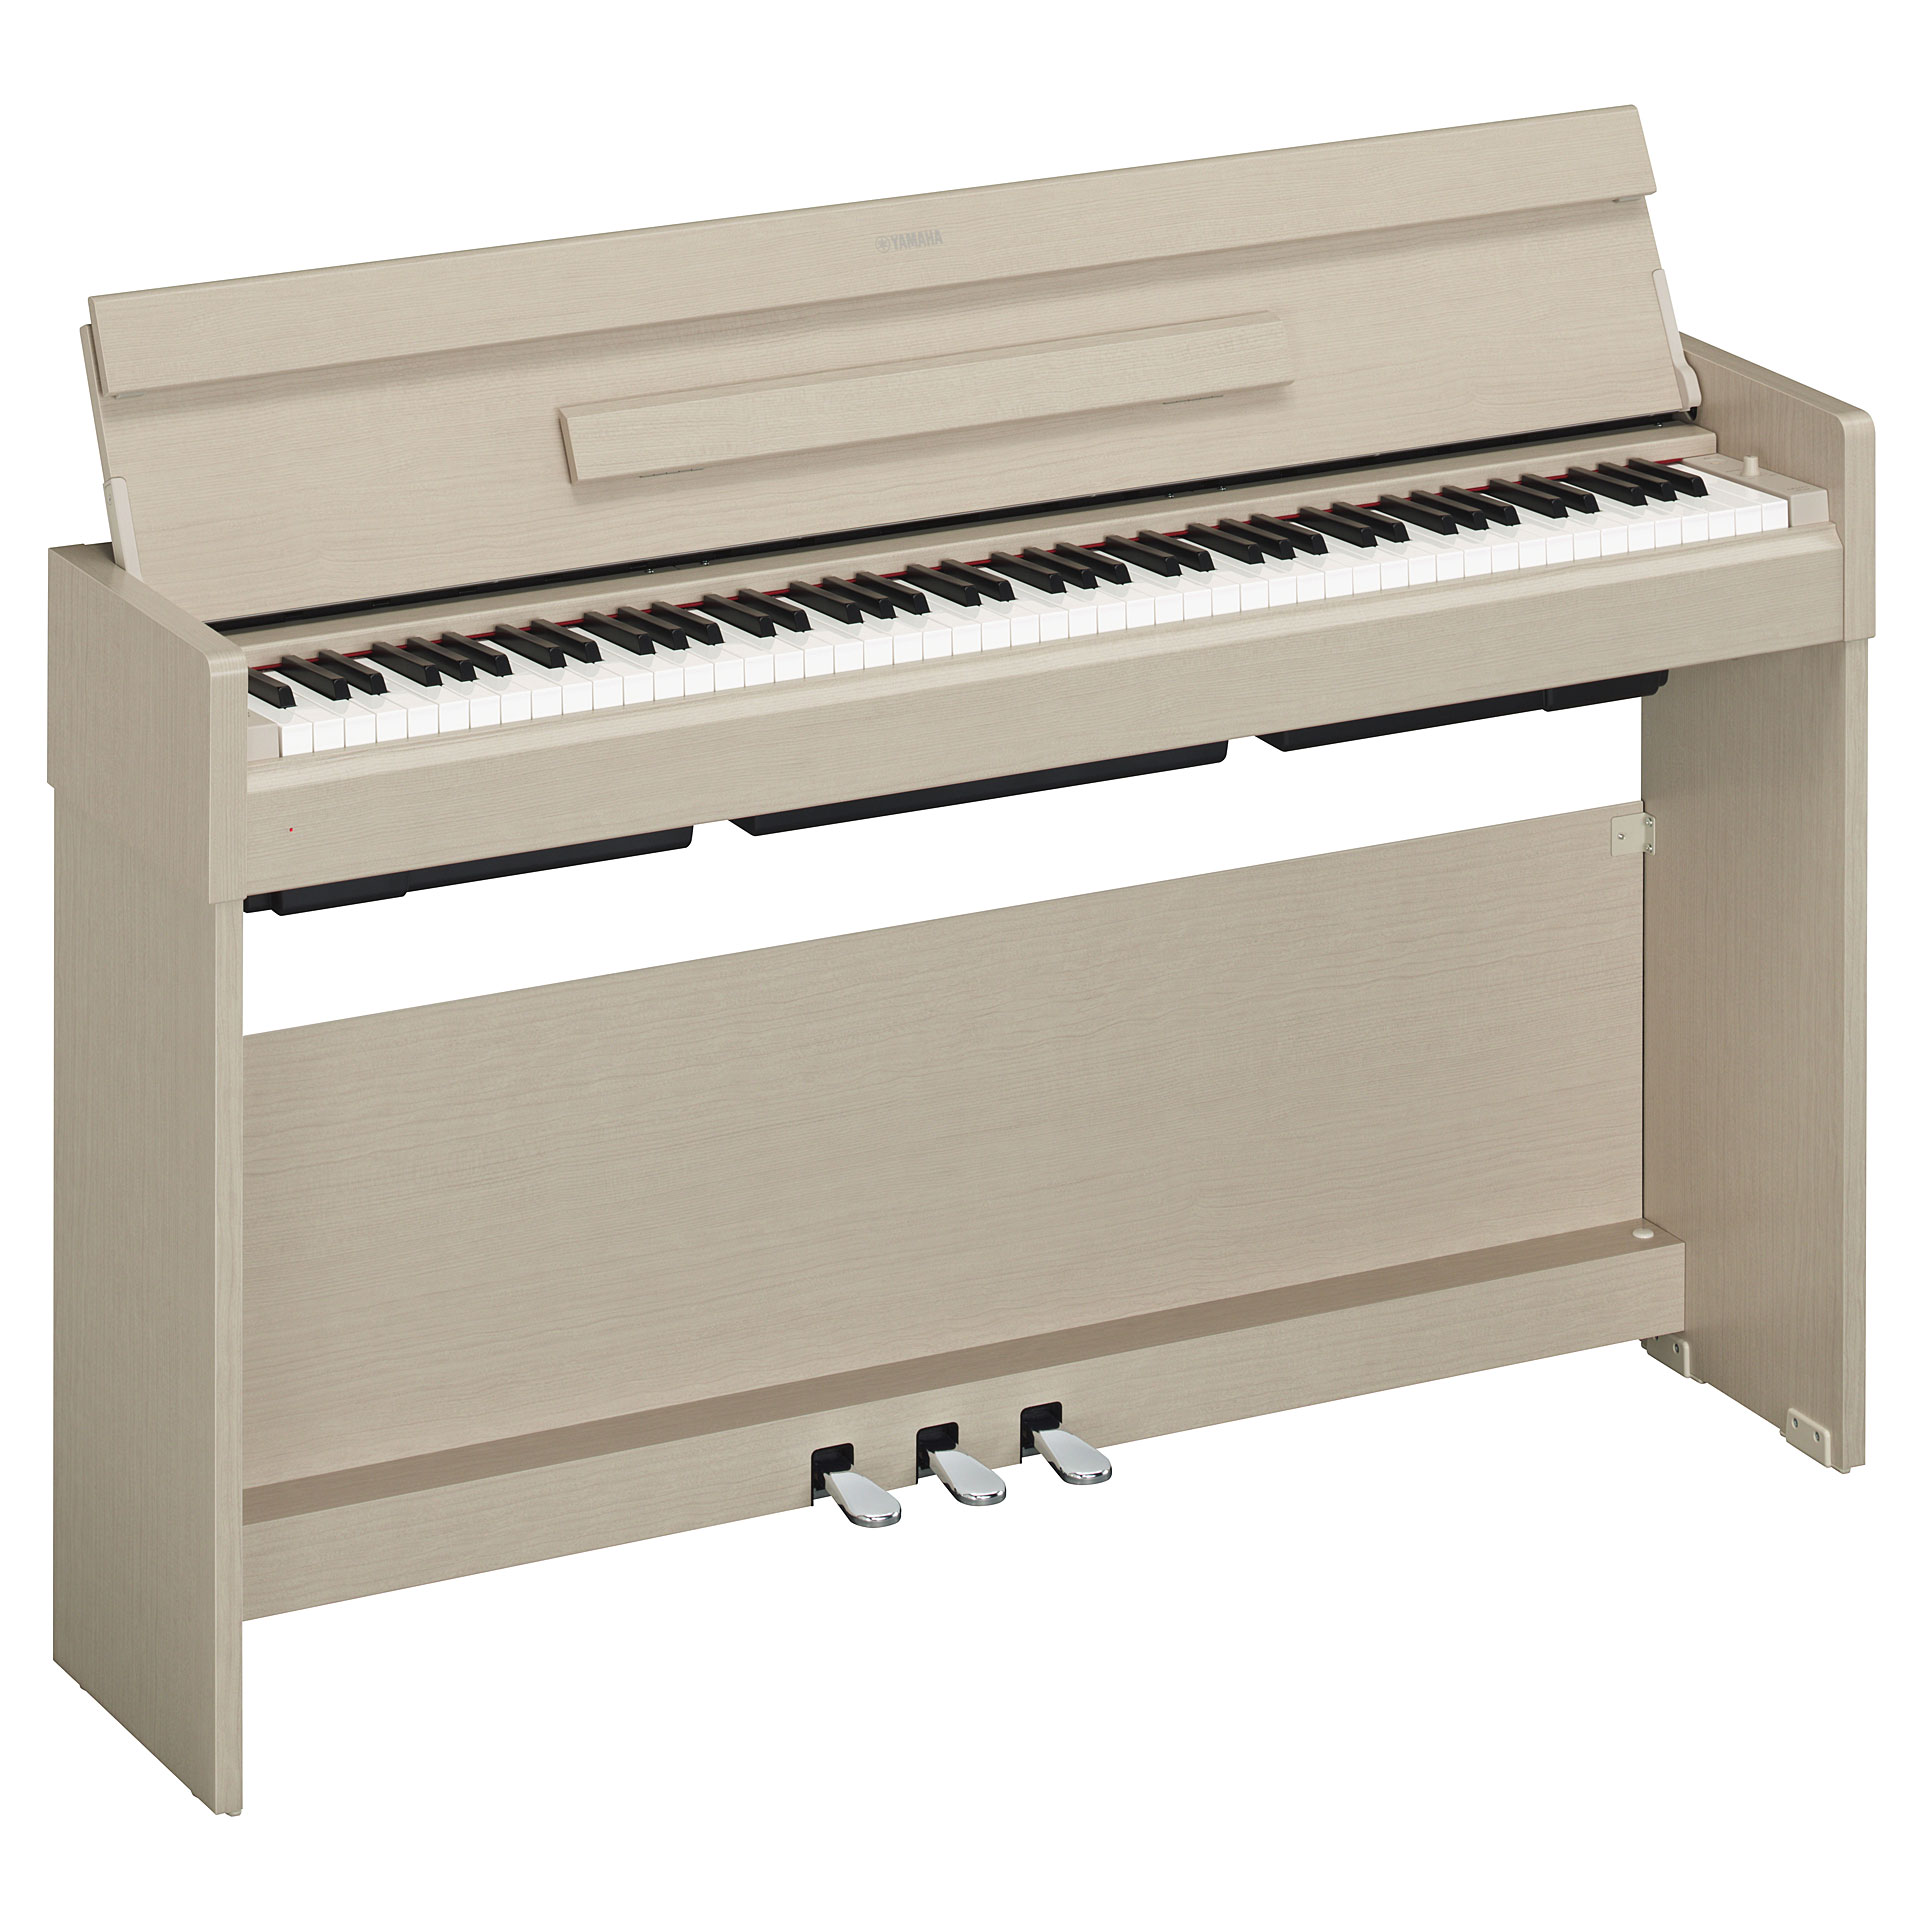 yamaha arius ydp s34 wa digitalpiano musik produktiv. Black Bedroom Furniture Sets. Home Design Ideas